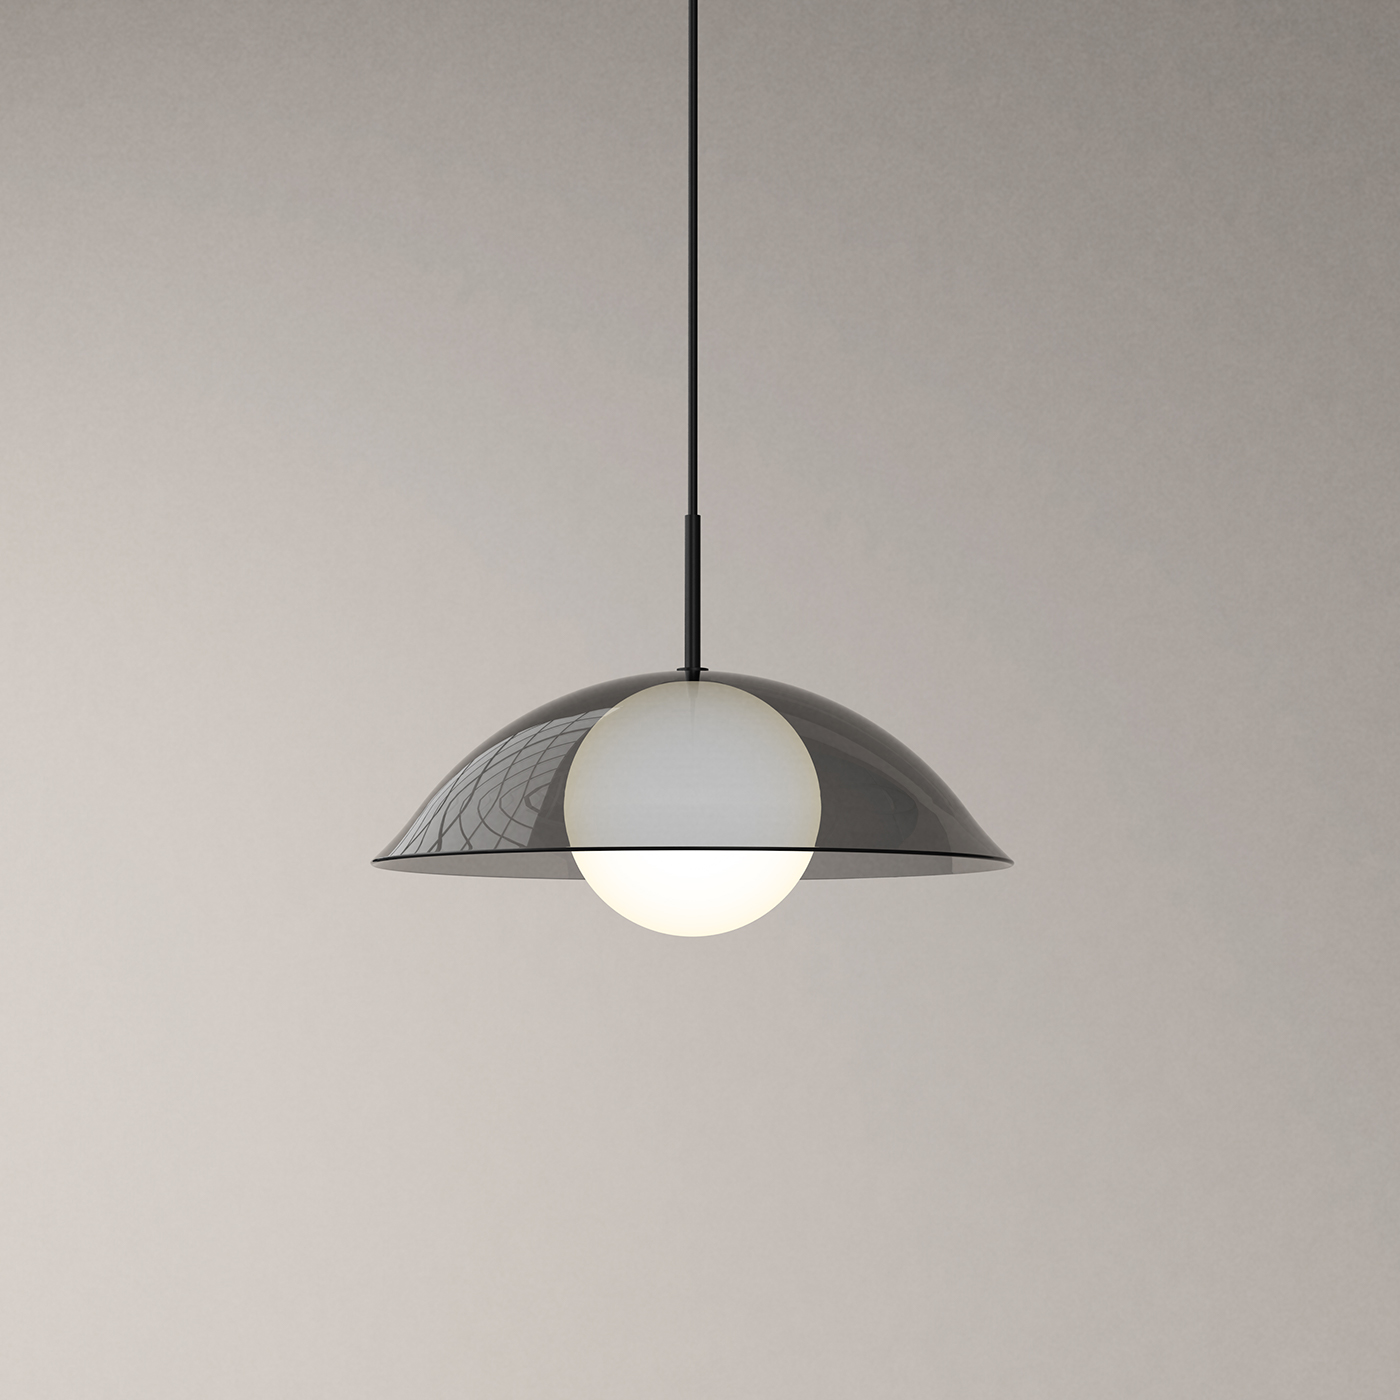 Pearl black pendant lamp by Karakter